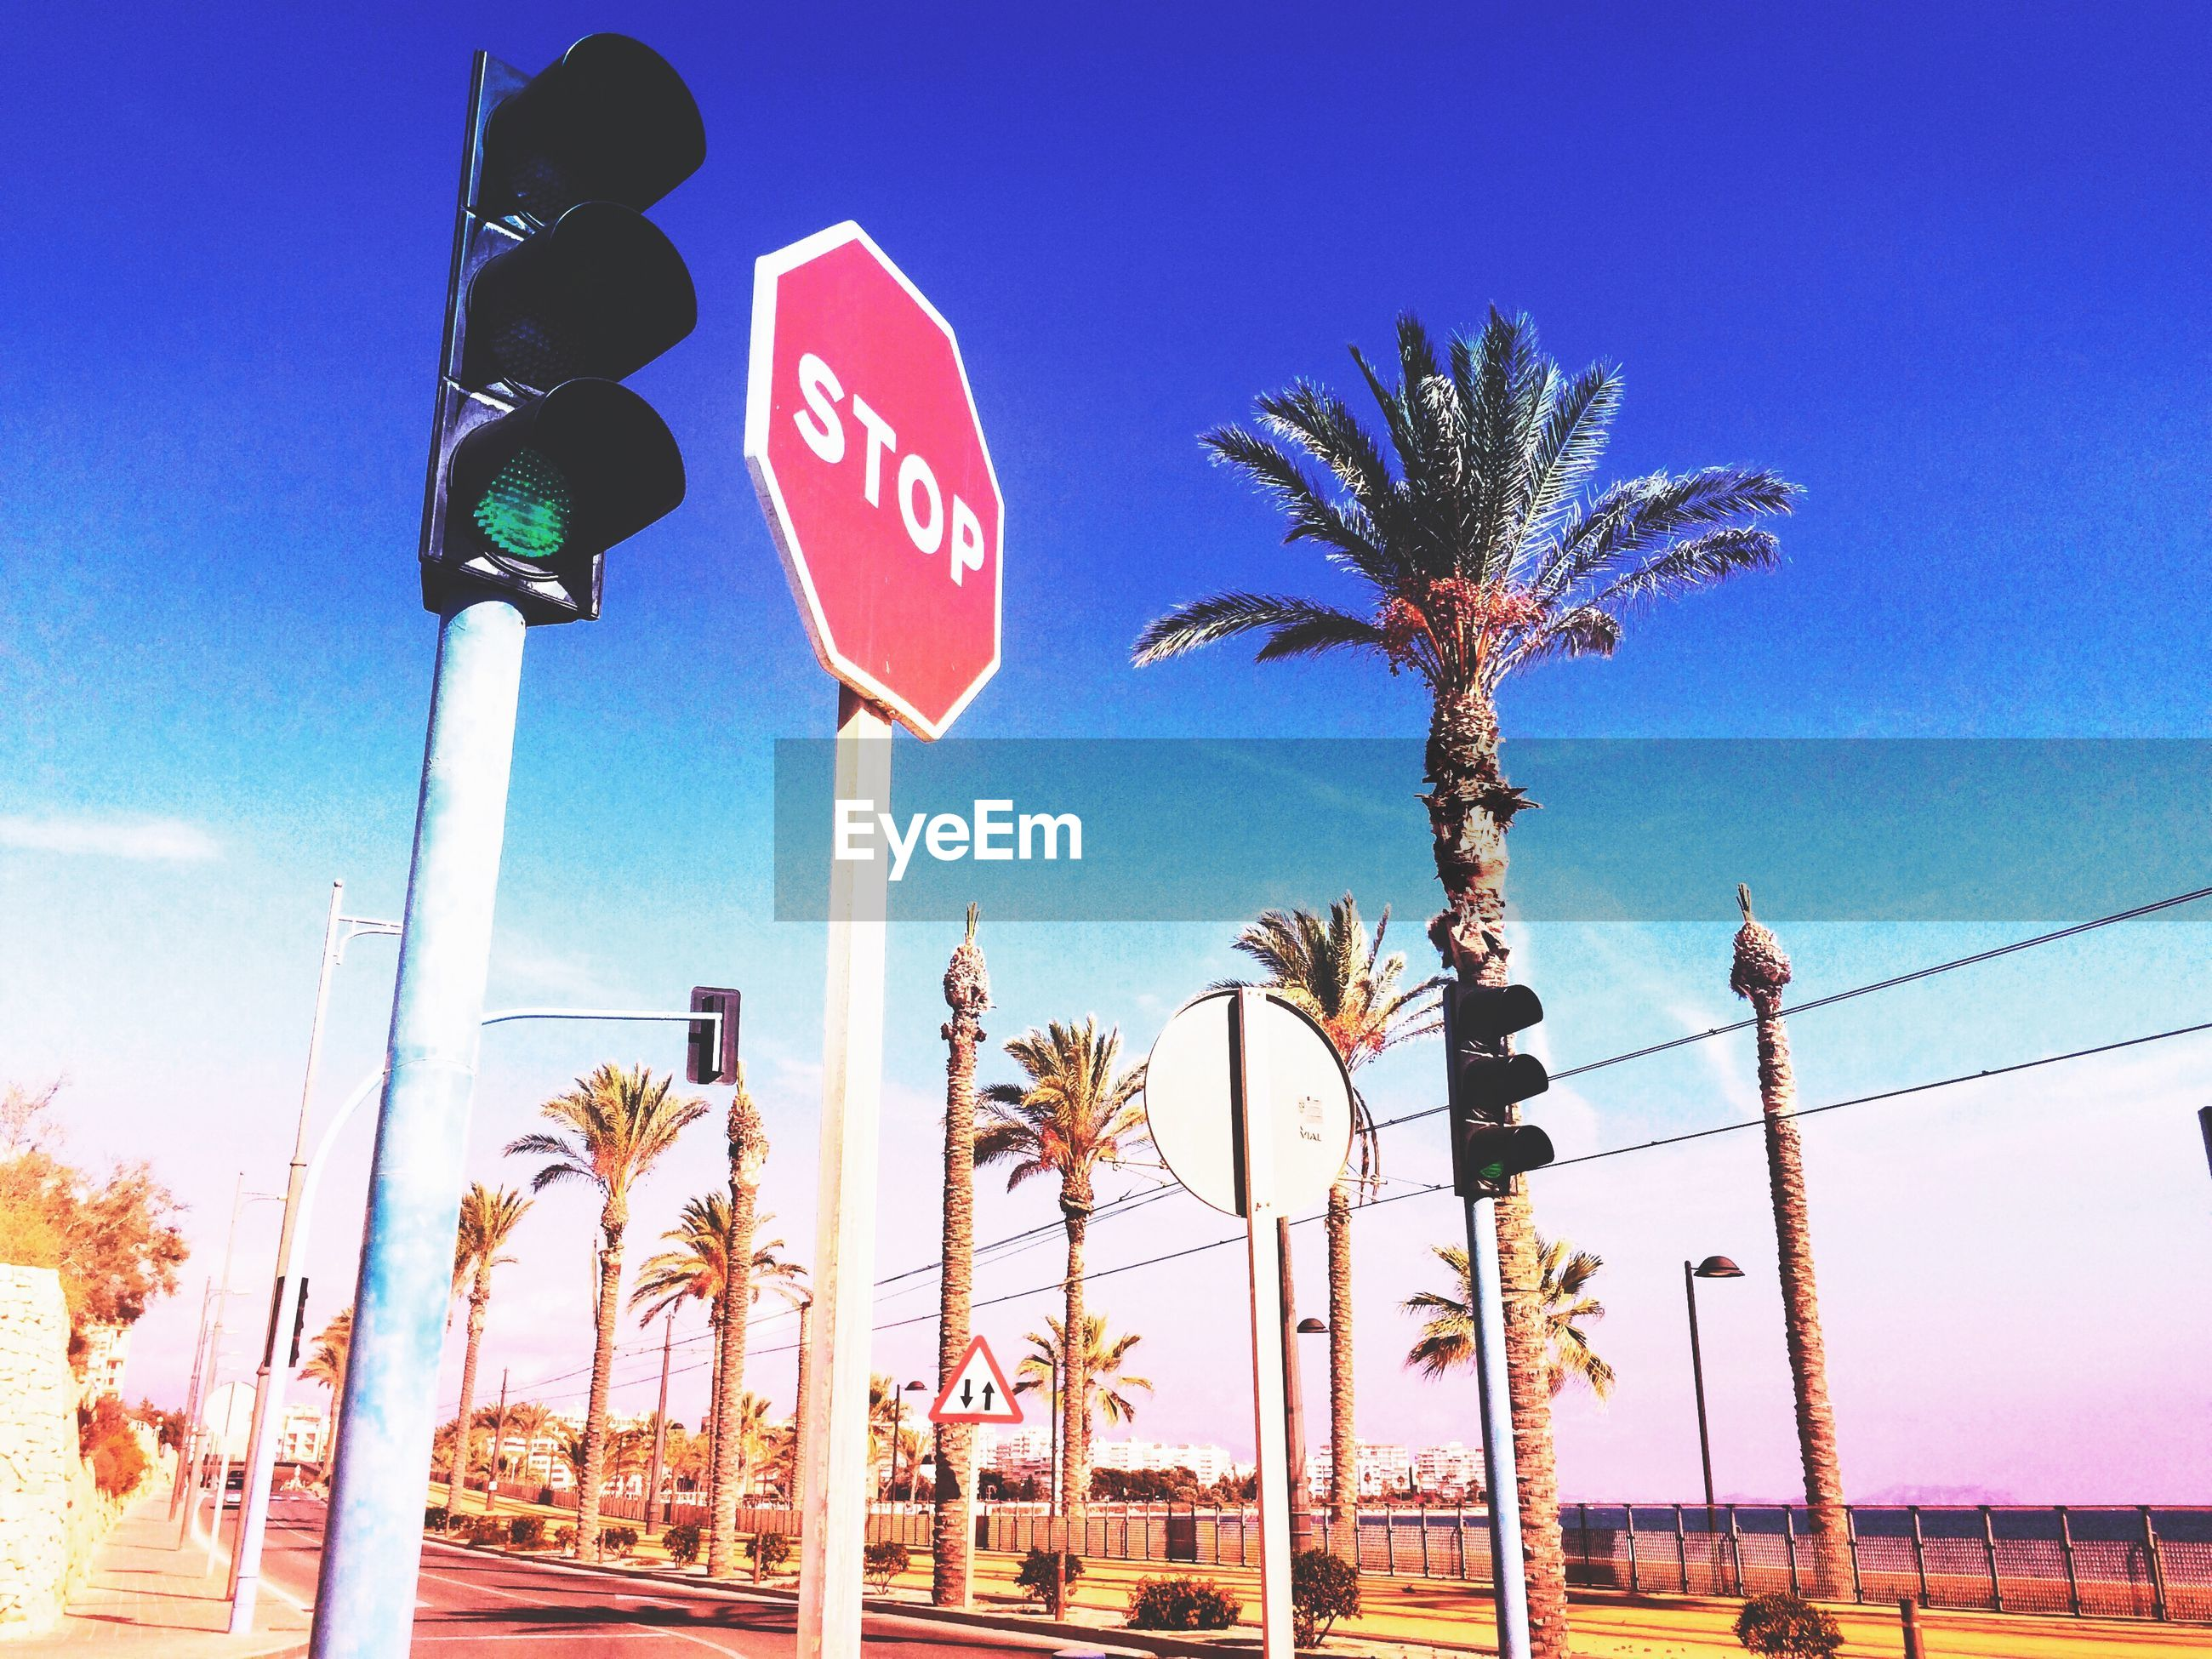 Low angle view of traffic signal and palm trees against blue sky